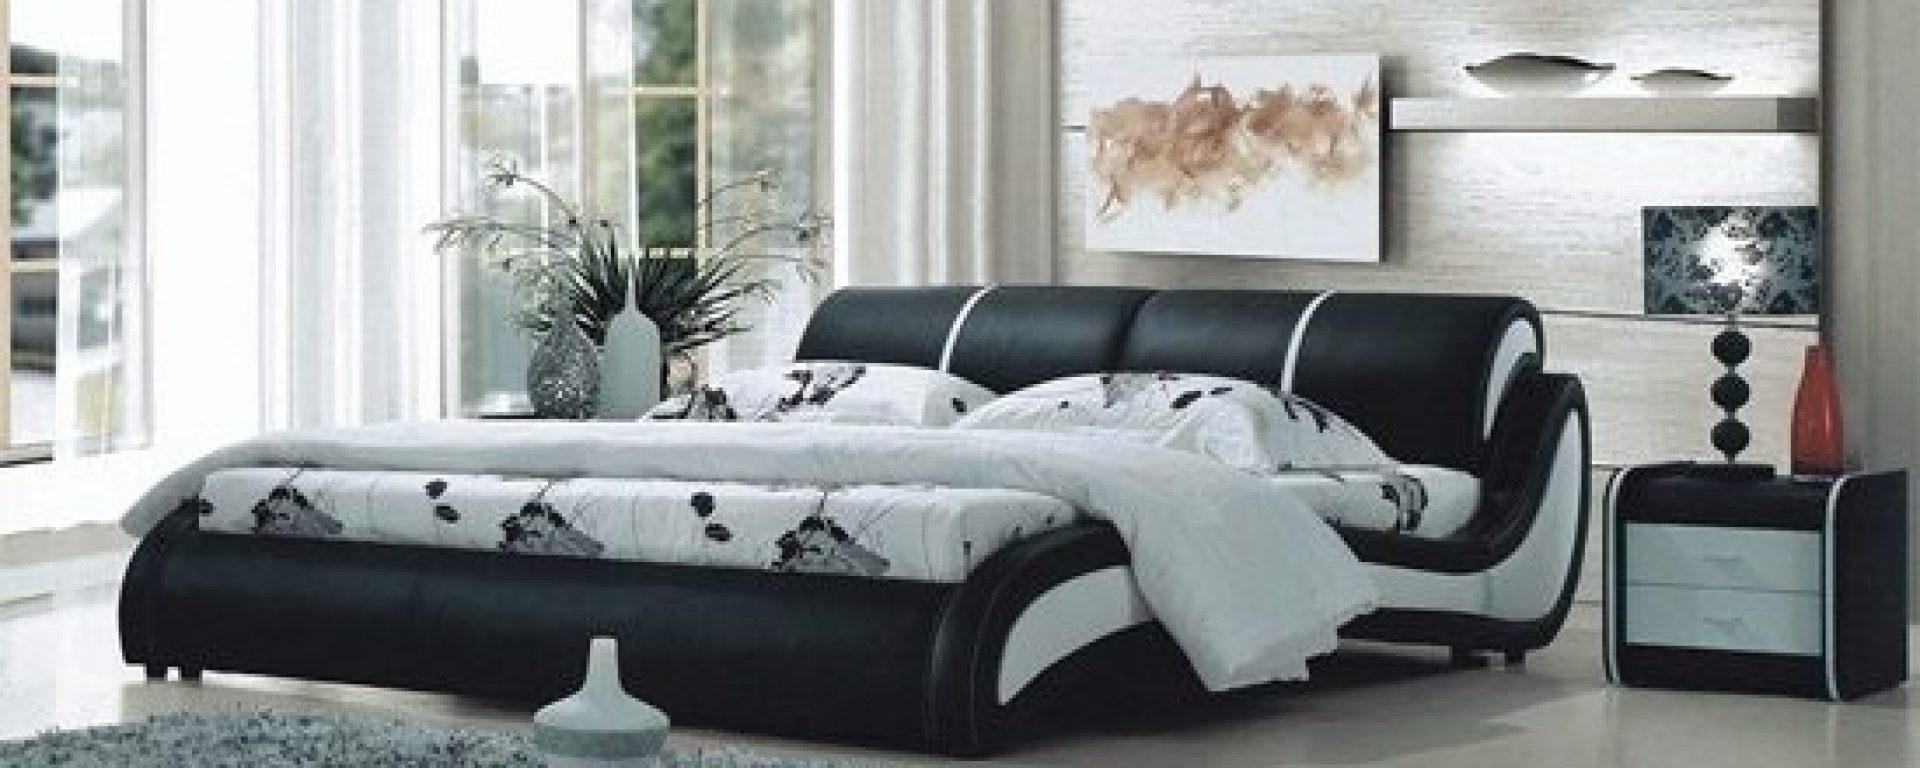 Purchasing The Best Modern Bedroom Furniture